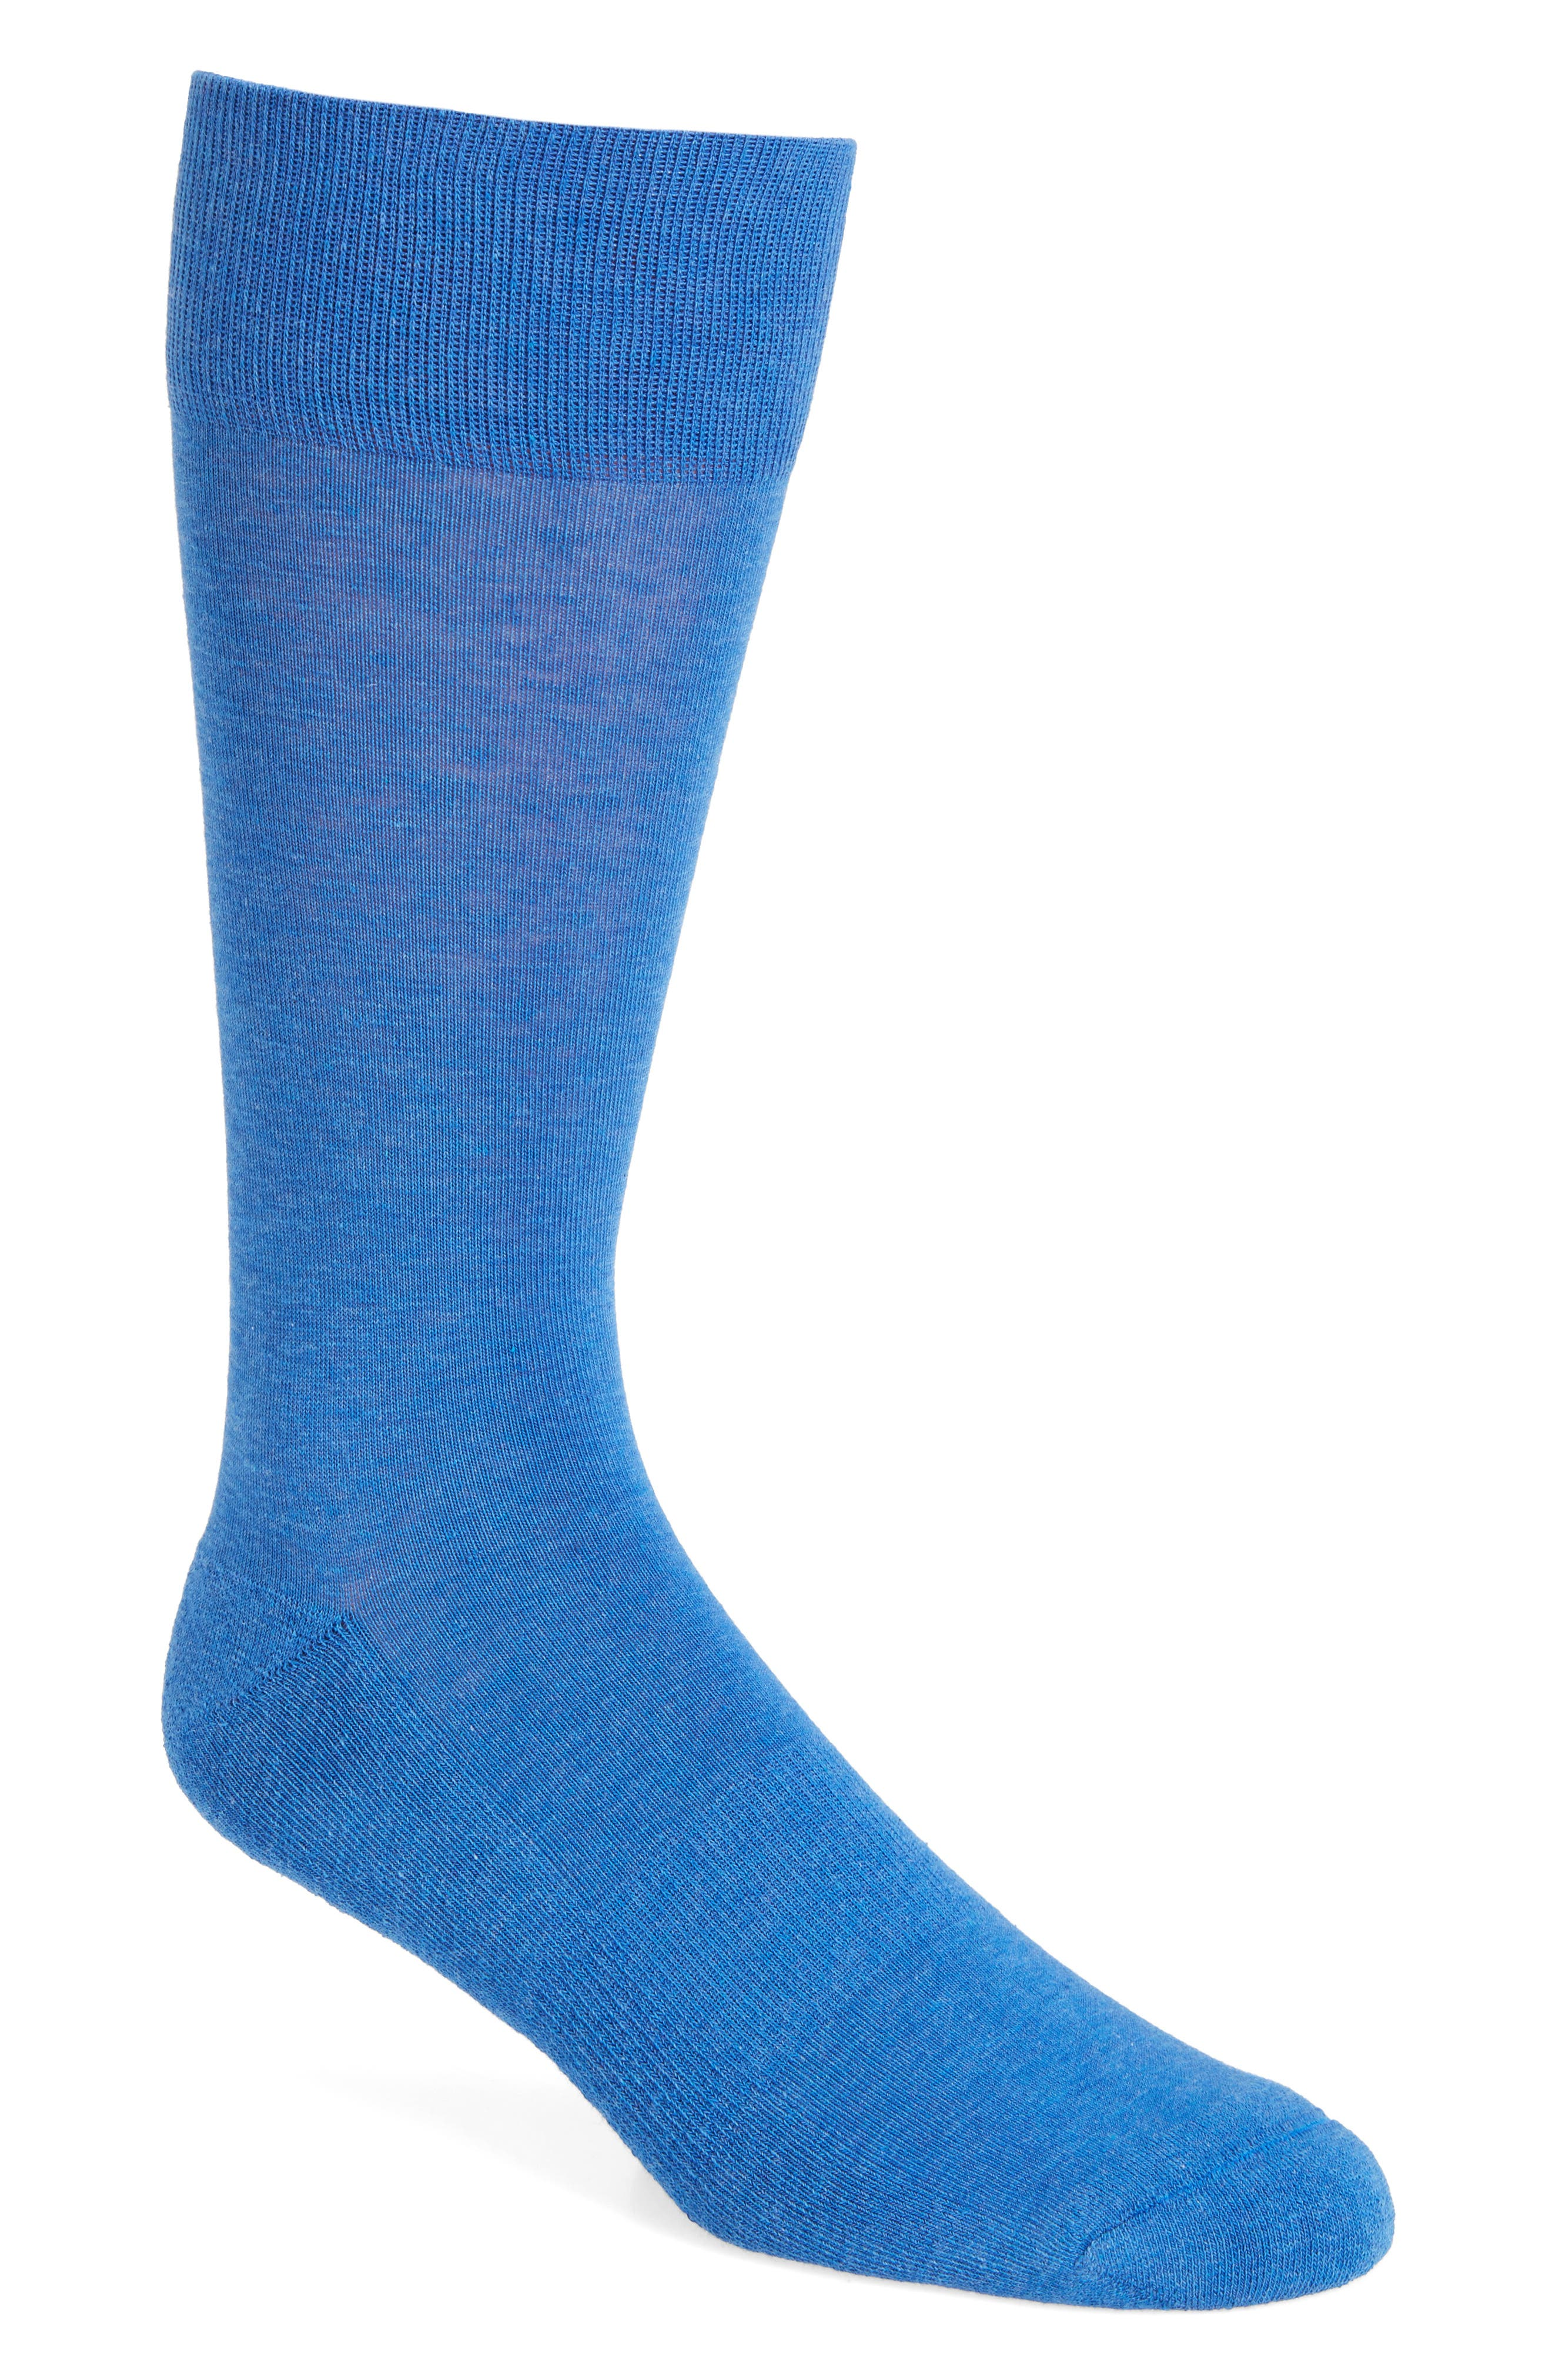 Cushion Foot Arch Support Socks,                         Main,                         color, Blue Cobalt